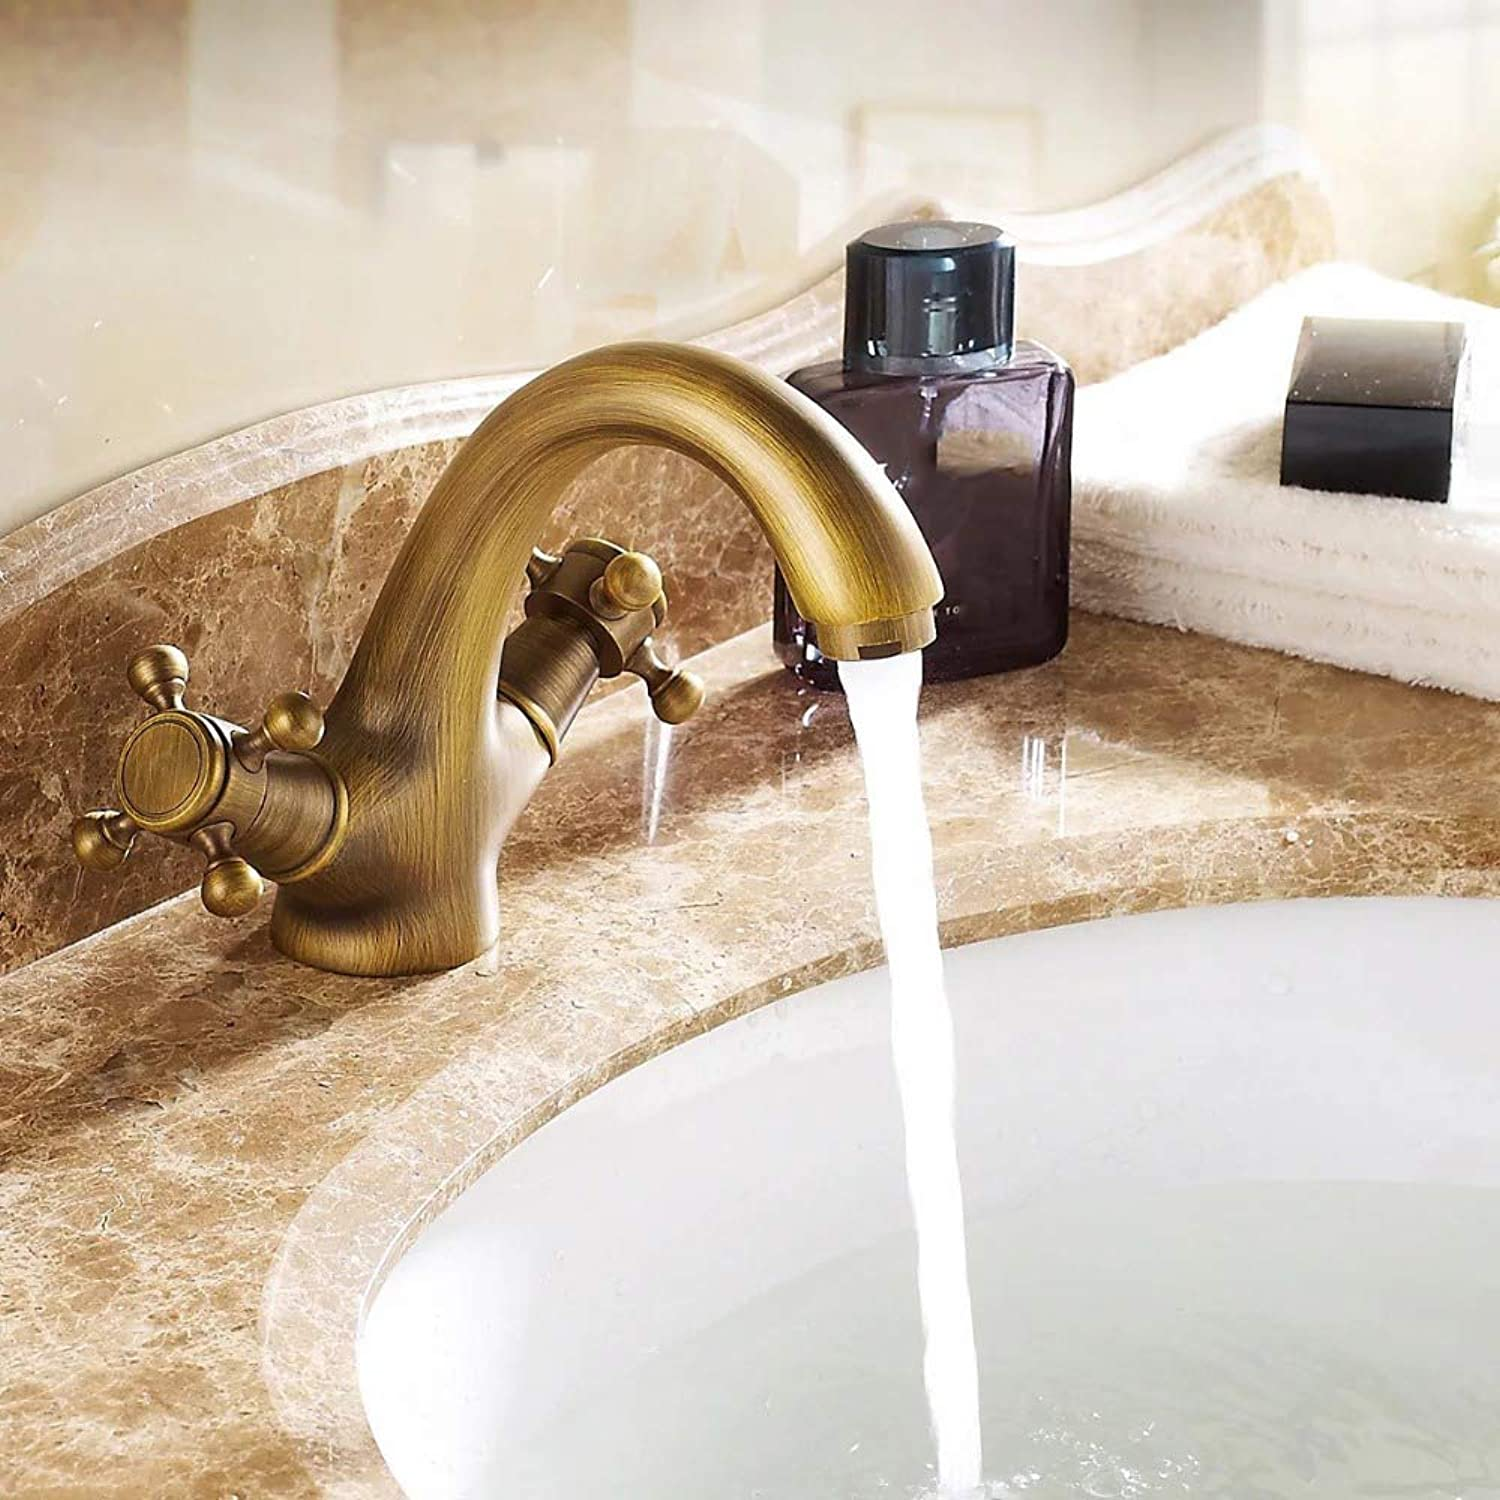 IFELGUD Brass Waterfall Bathroom Faucet Single Handle Sink Faucet Basin Faucet